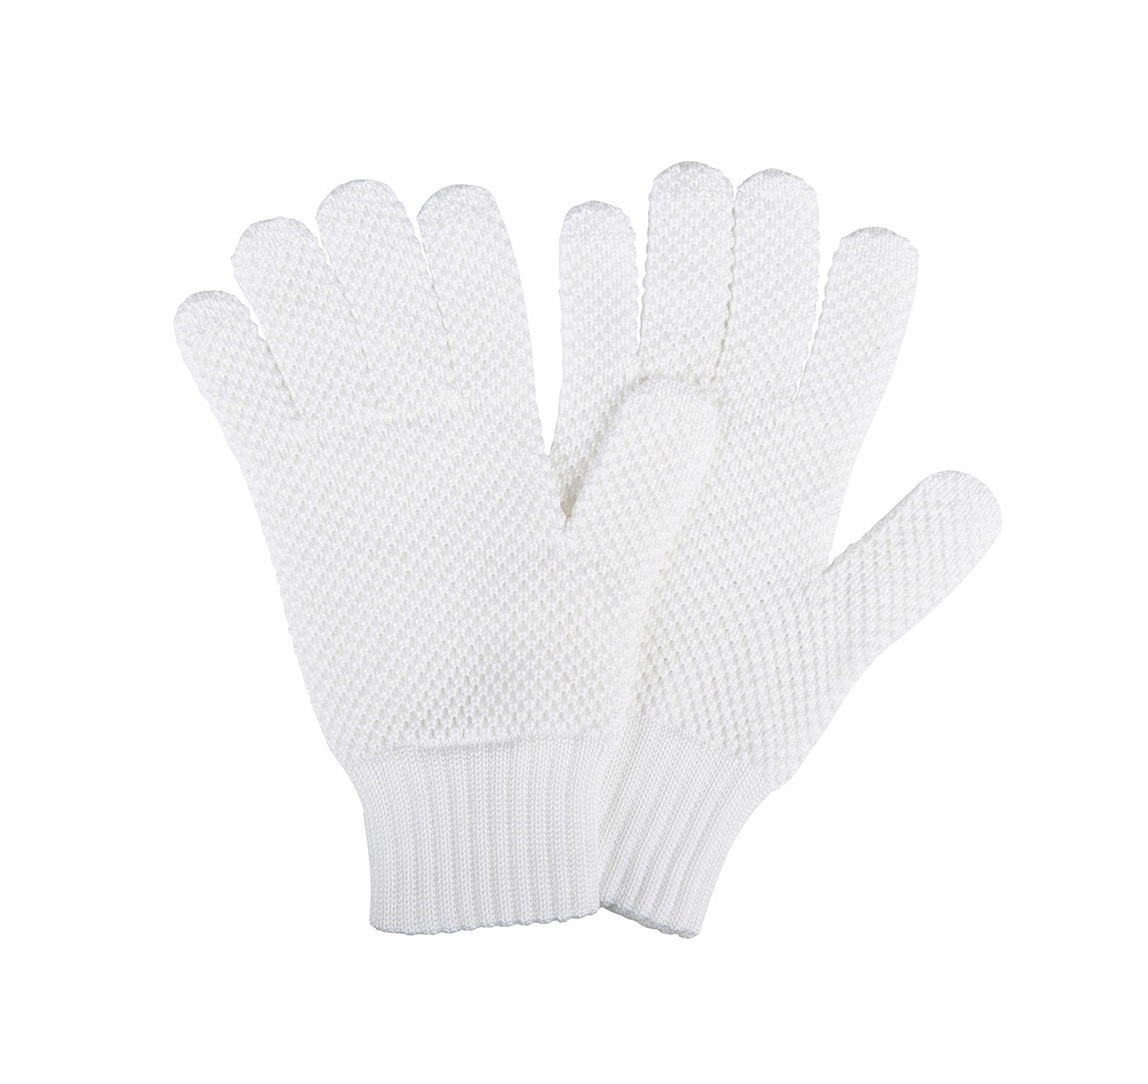 Lot de 3 paires de gants au crochet